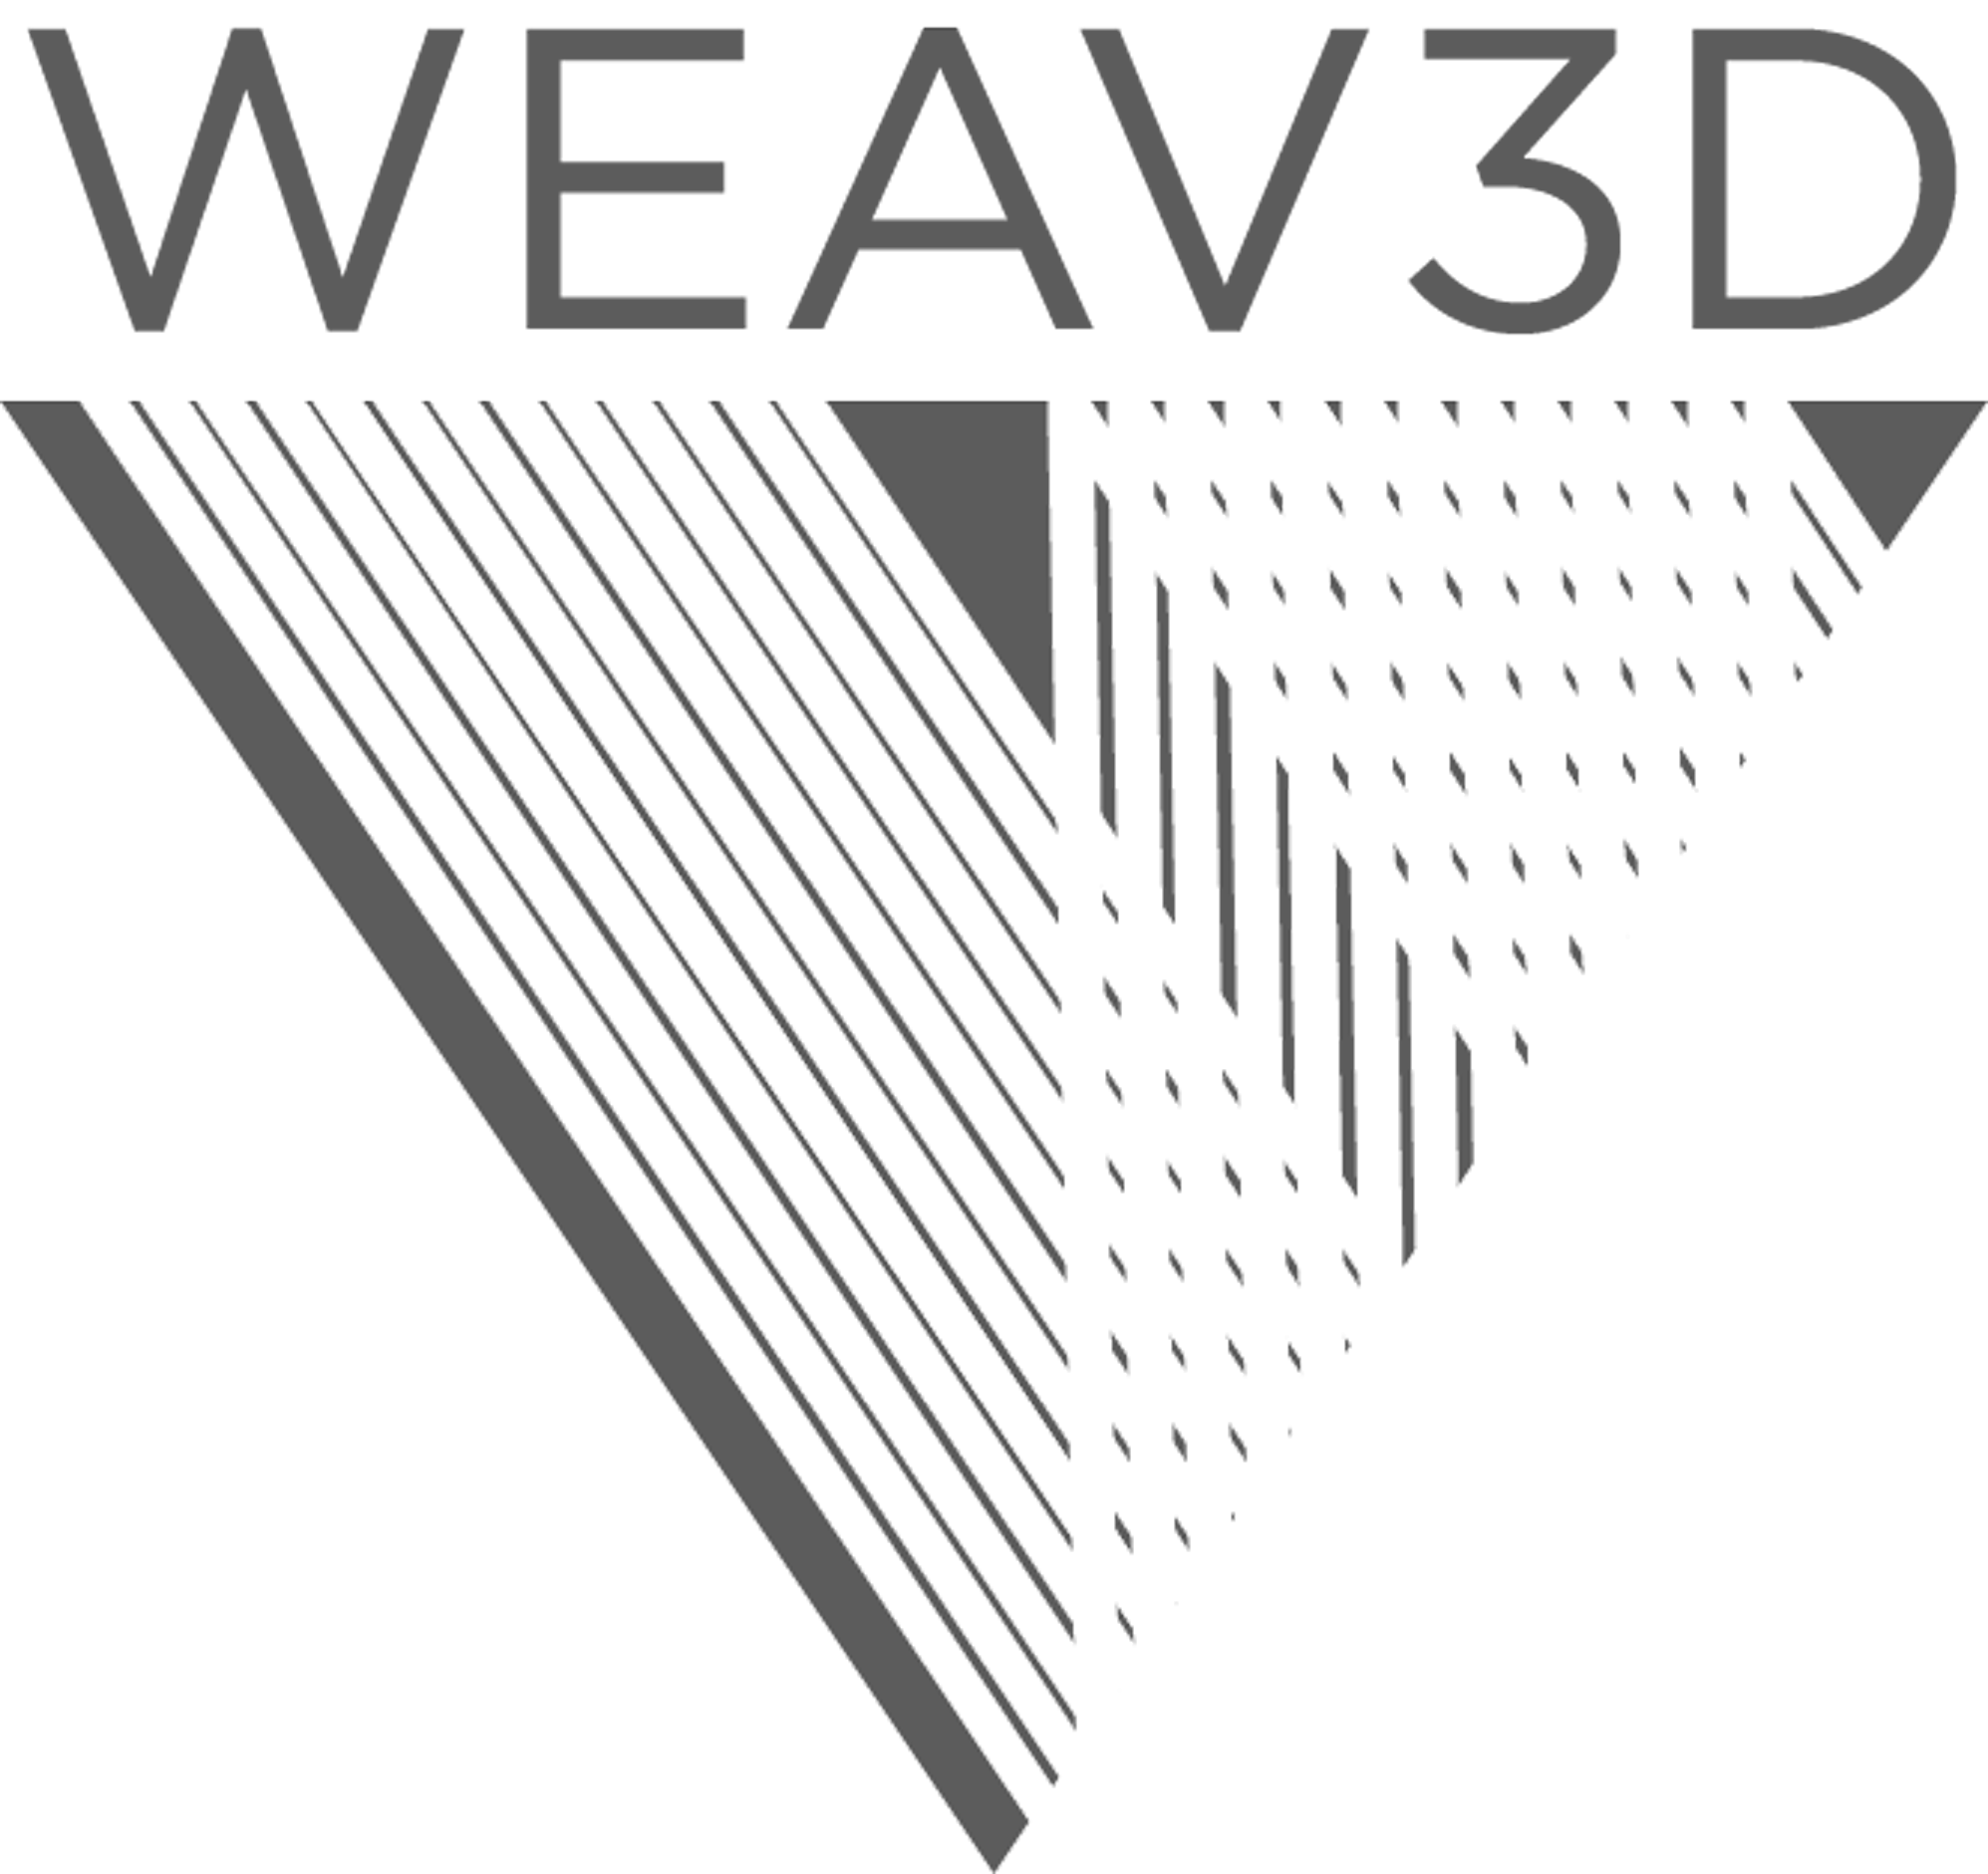 WEAV3D - This Atlanta, Georgia based company This Atlanta, Georgia based team is developing new composite forming equipment.